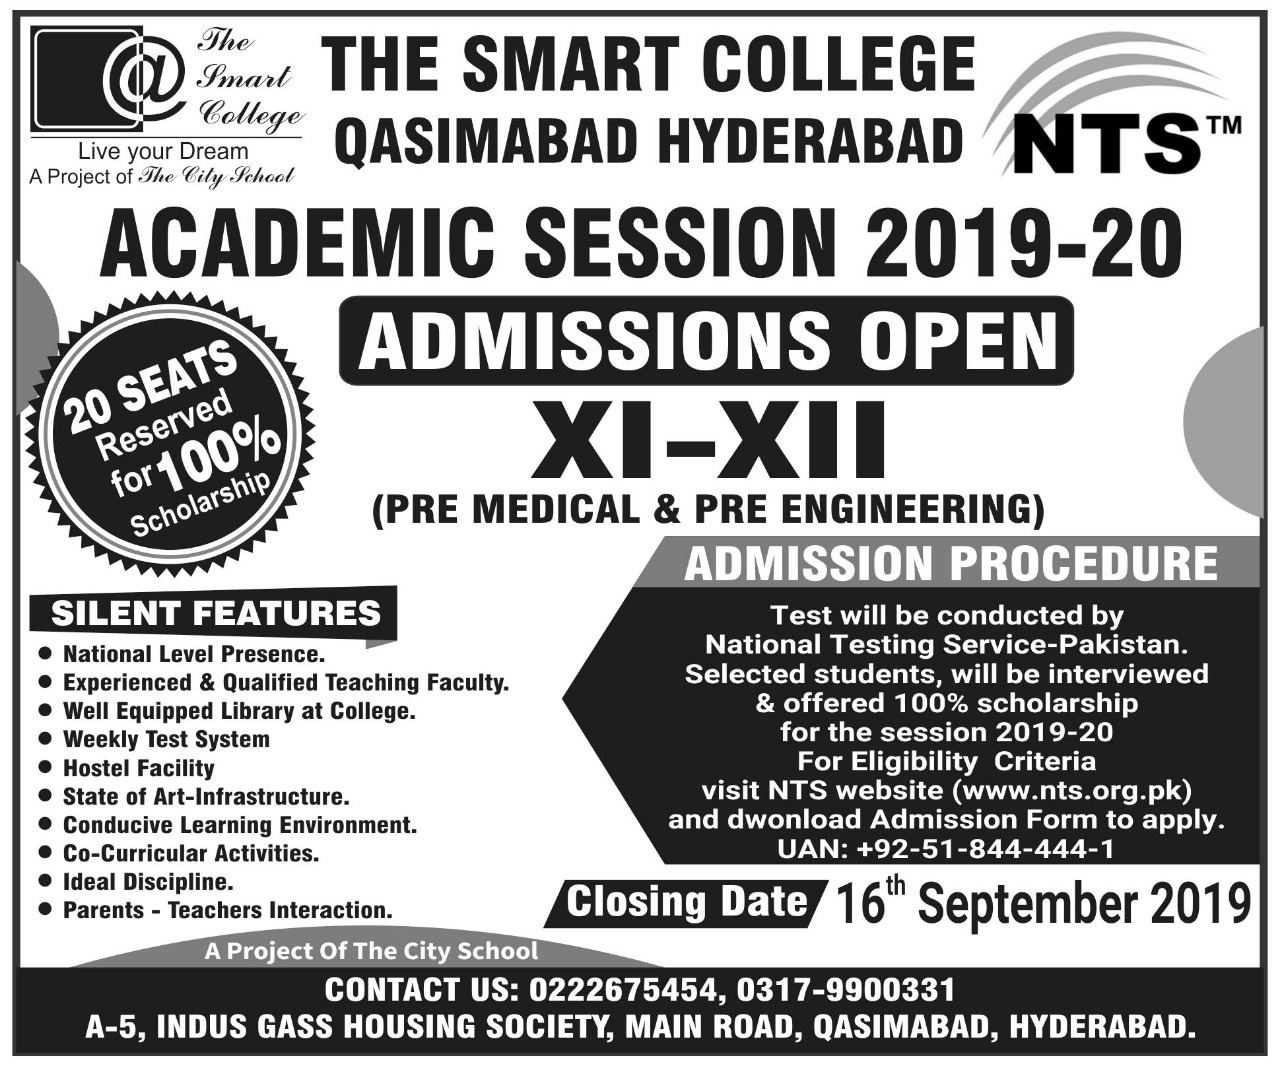 The Smart College Hyderabad NTS Admission 2019 Application